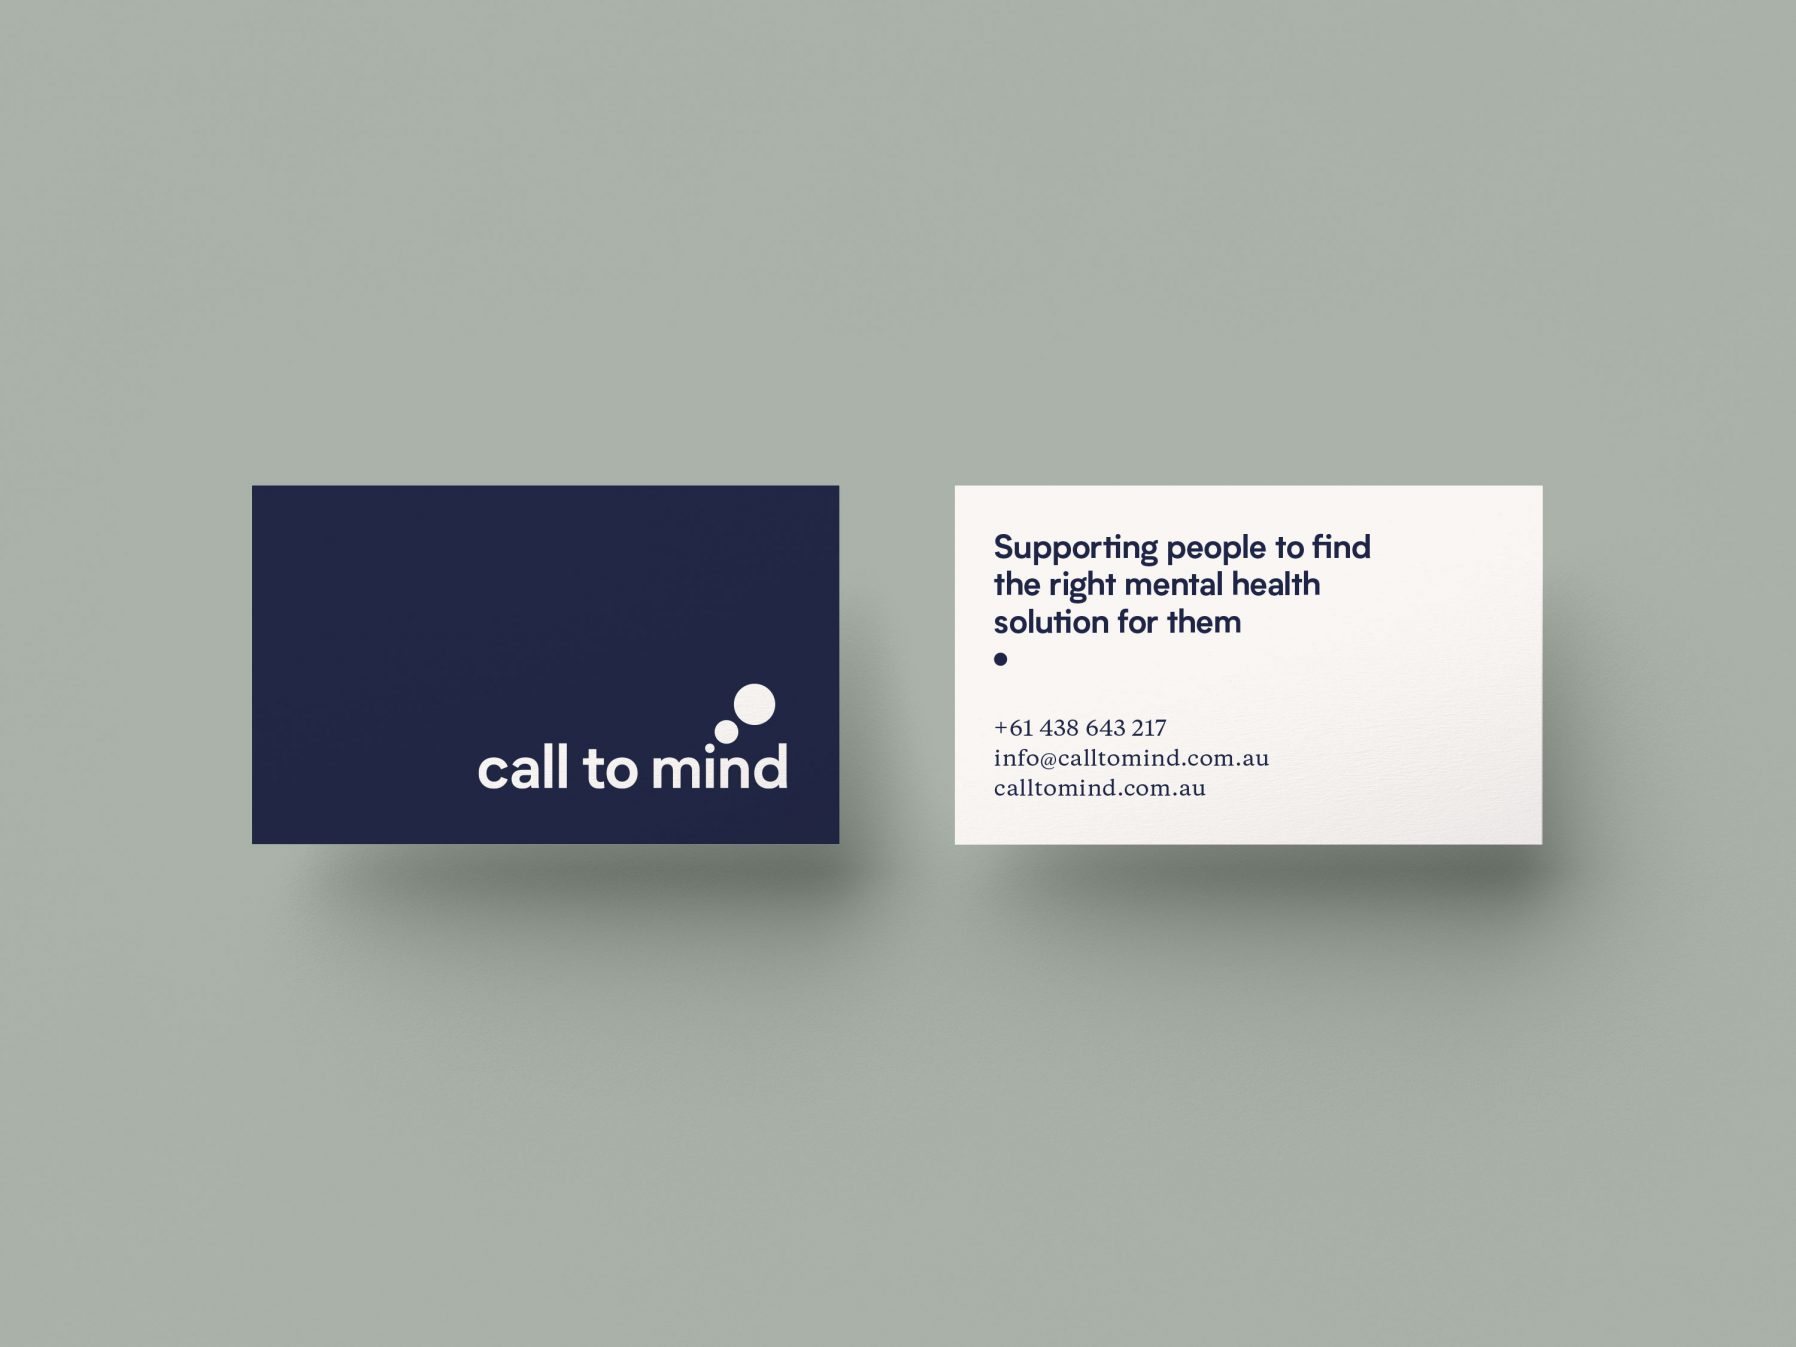 JAC&, Branding, Call to Mind, Healthcare, Telehealth, Illustration